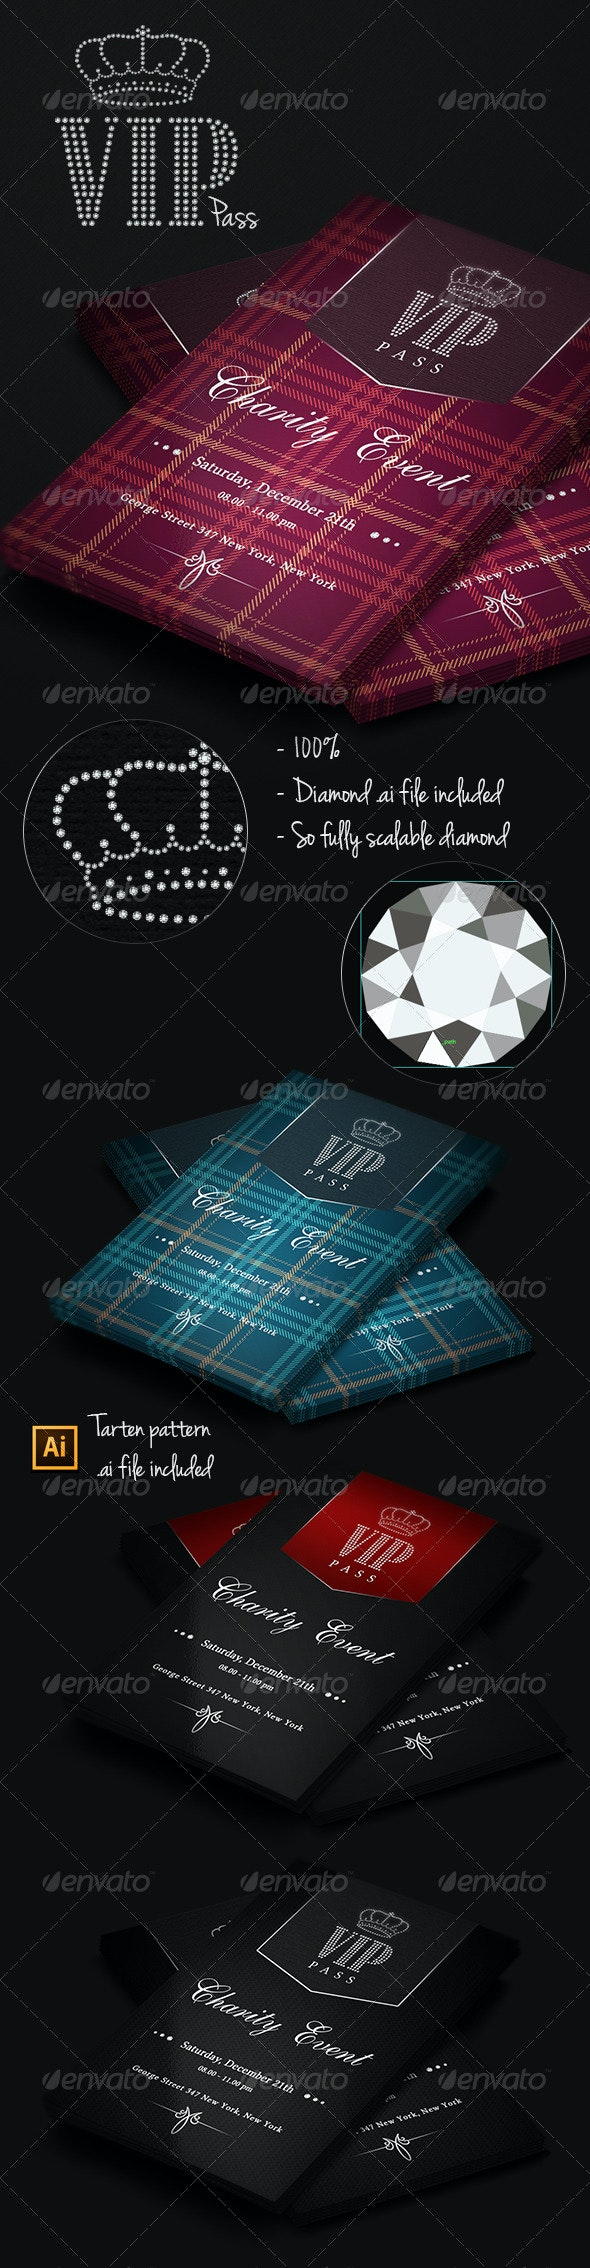 VIP Pass - Charity Event - Invitations Cards & Invites